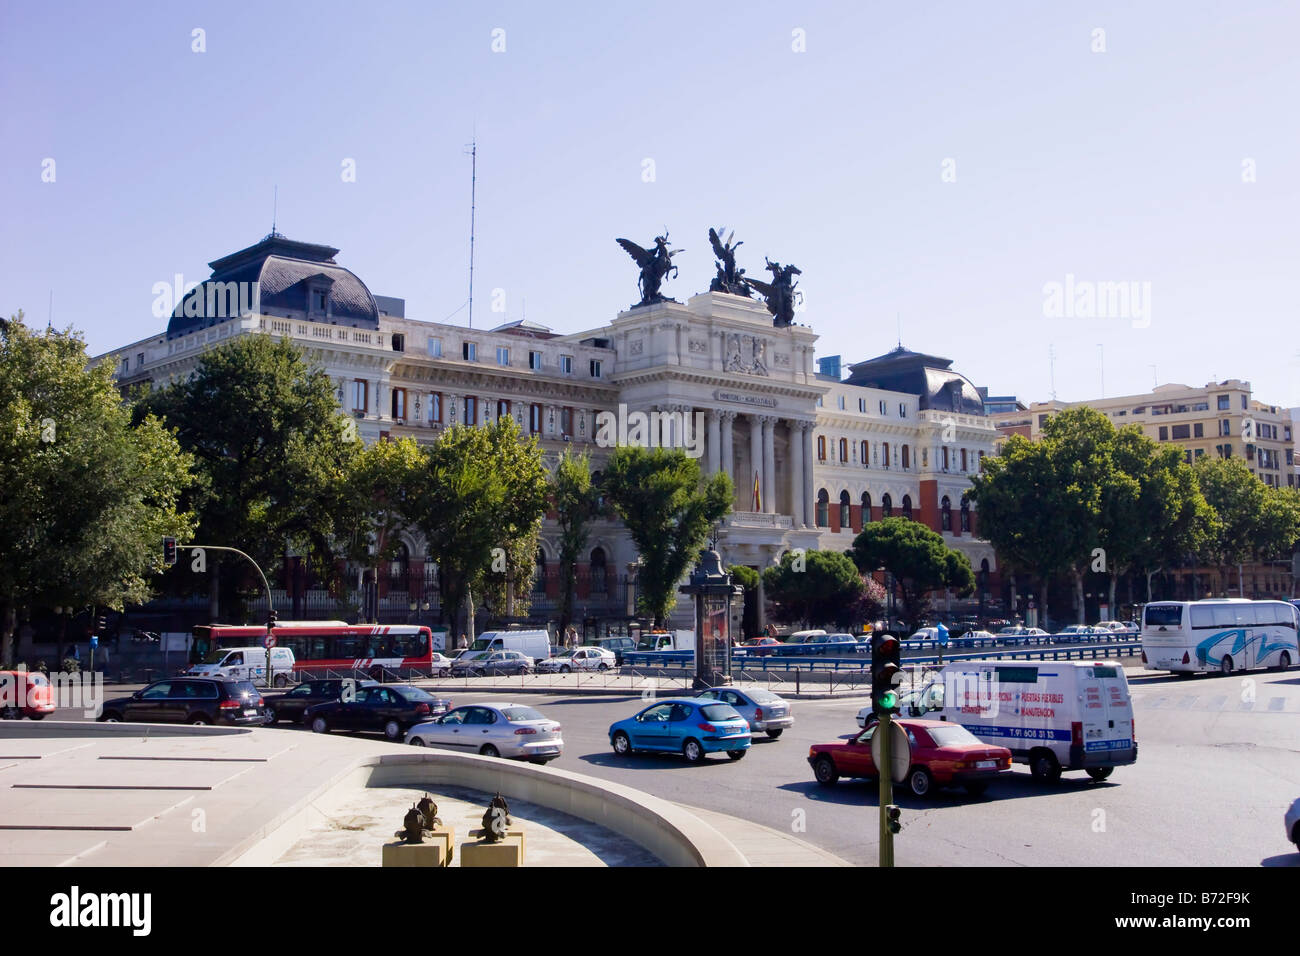 Ministerio de Agricultura exterior frontage in Madrid Stock Photo